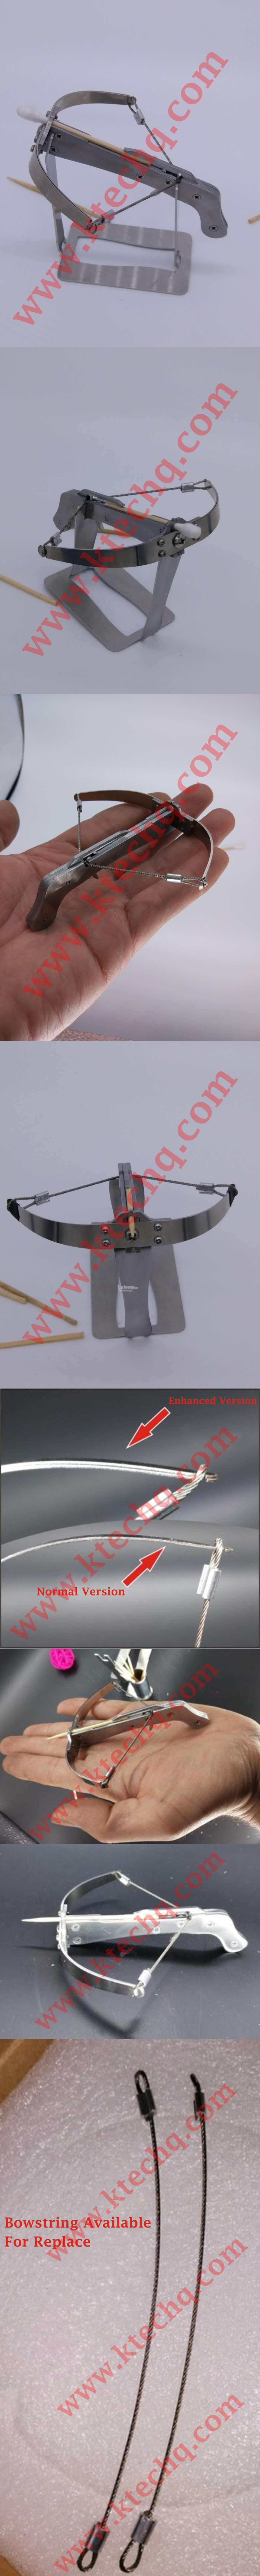 Creative Toothpick Mini Crossbow Child Toy Game Car Decor Shooting Bow